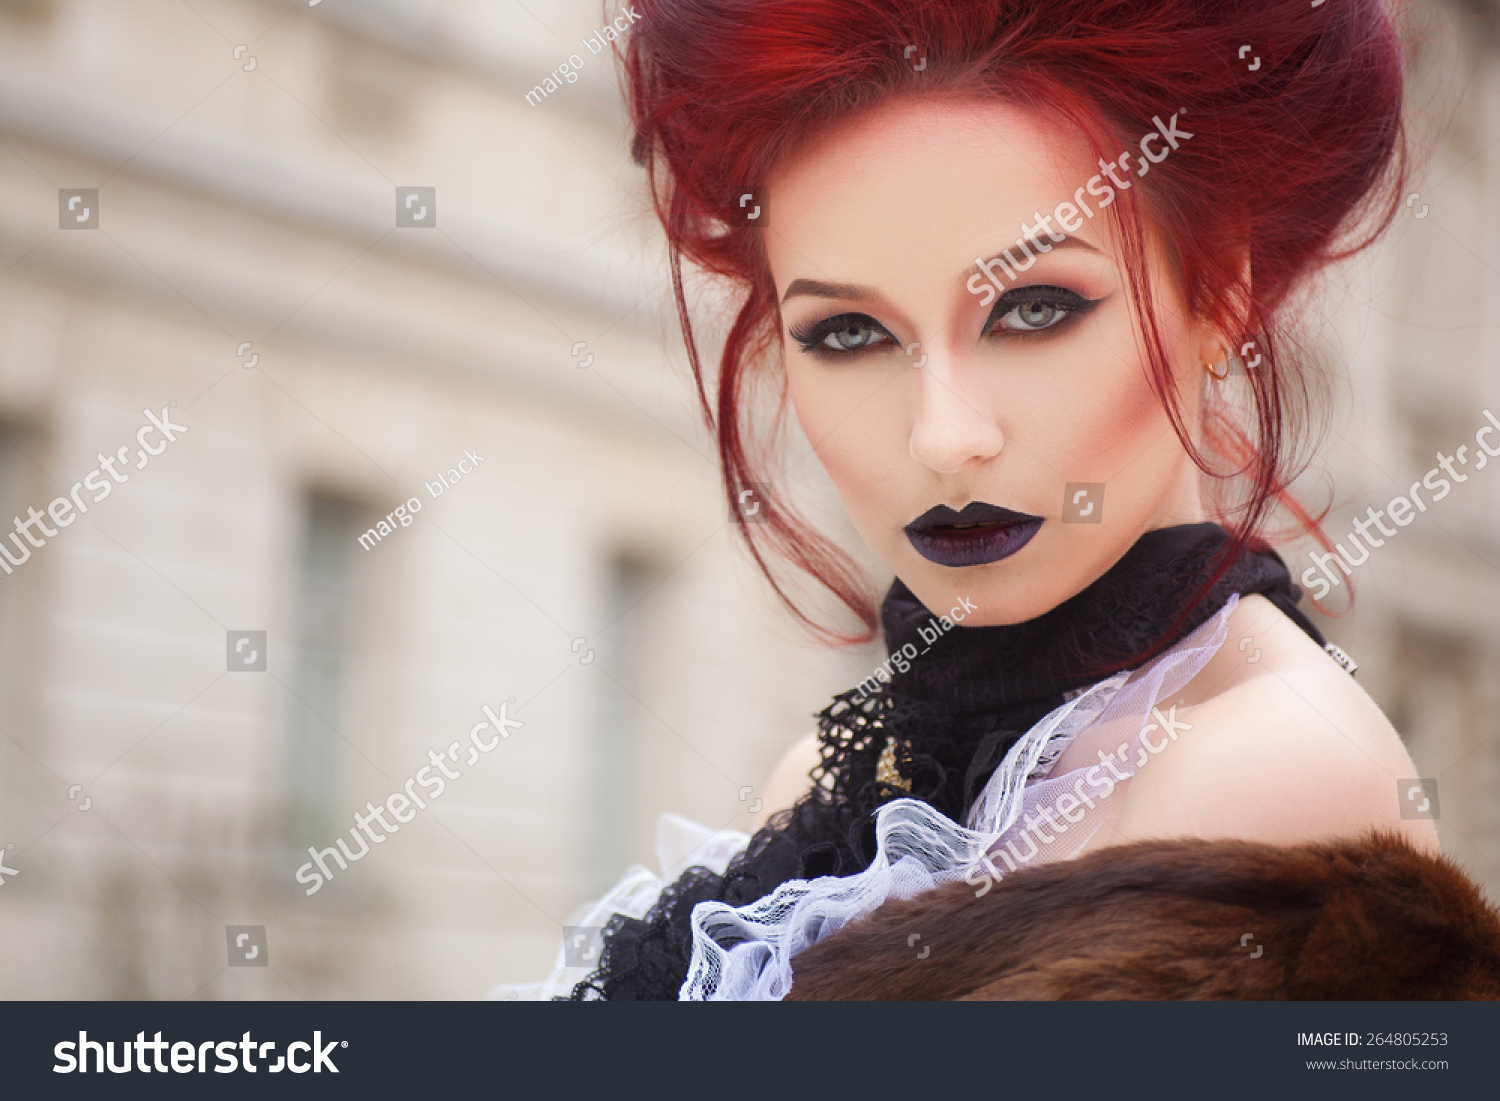 Makeup red Gothic recommend to wear for everyday in 2019